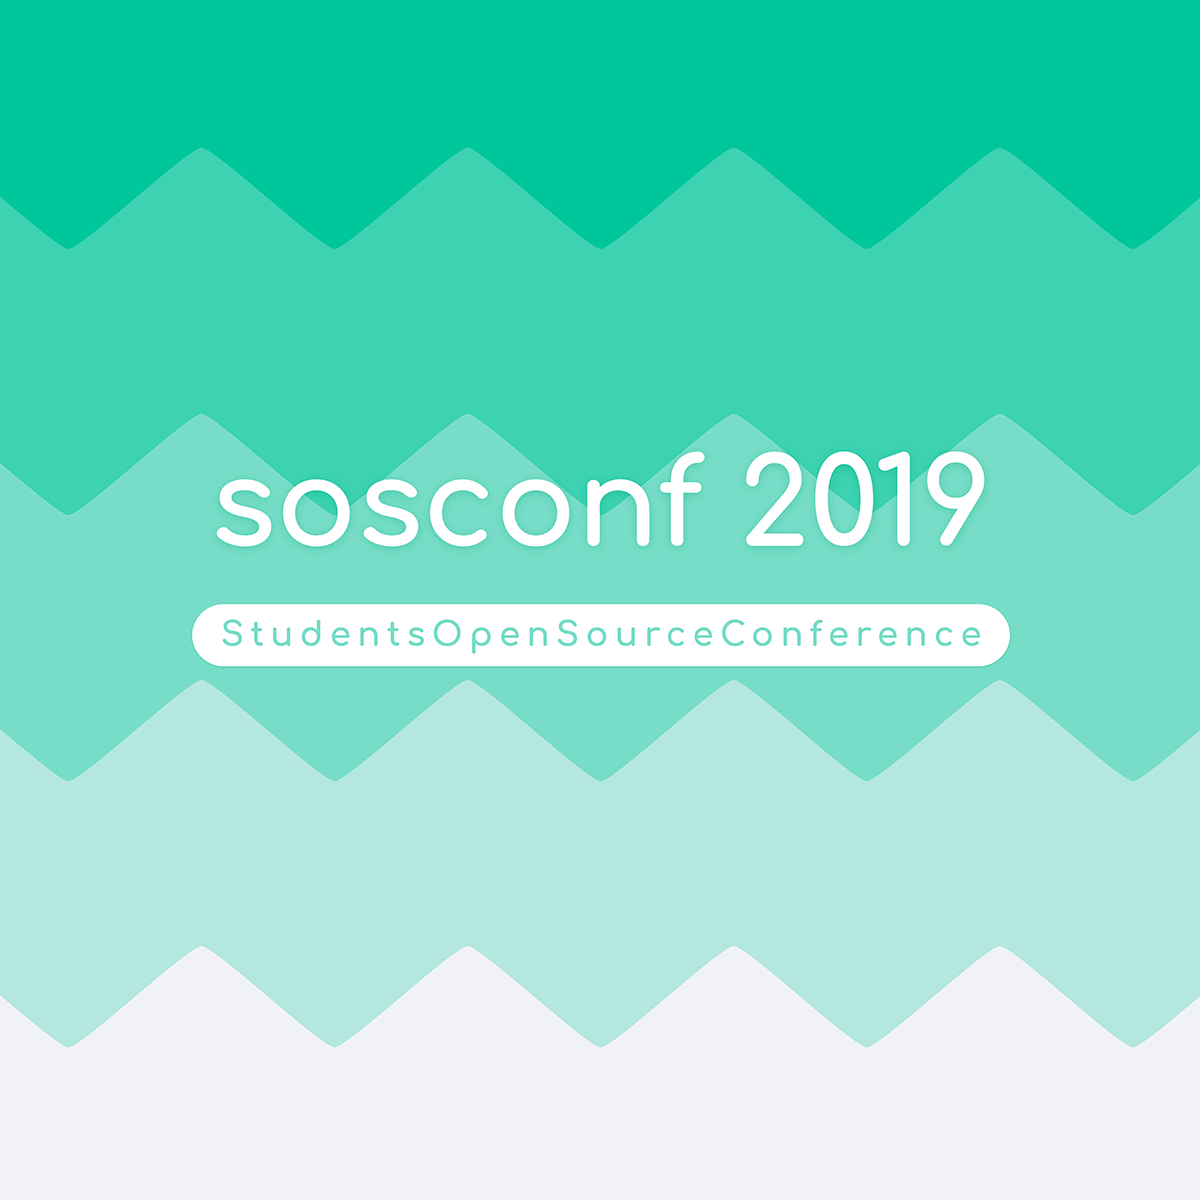 sosconf 2019 – 1st Students Open Source Conference